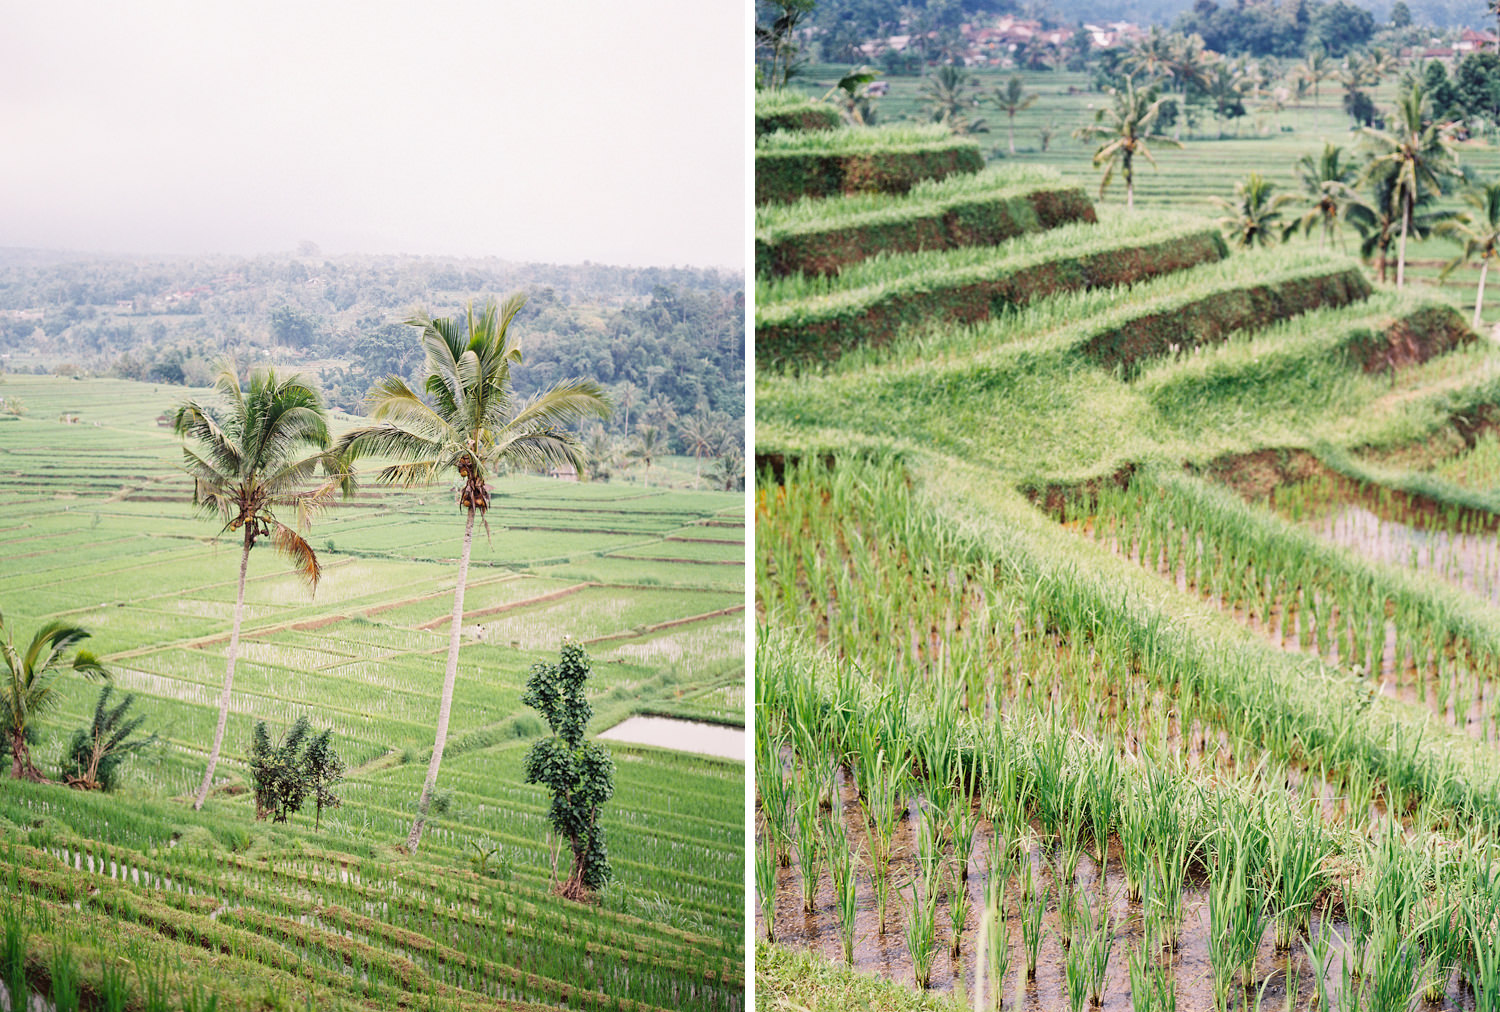 balinese rice terraces in the jatiluwih area